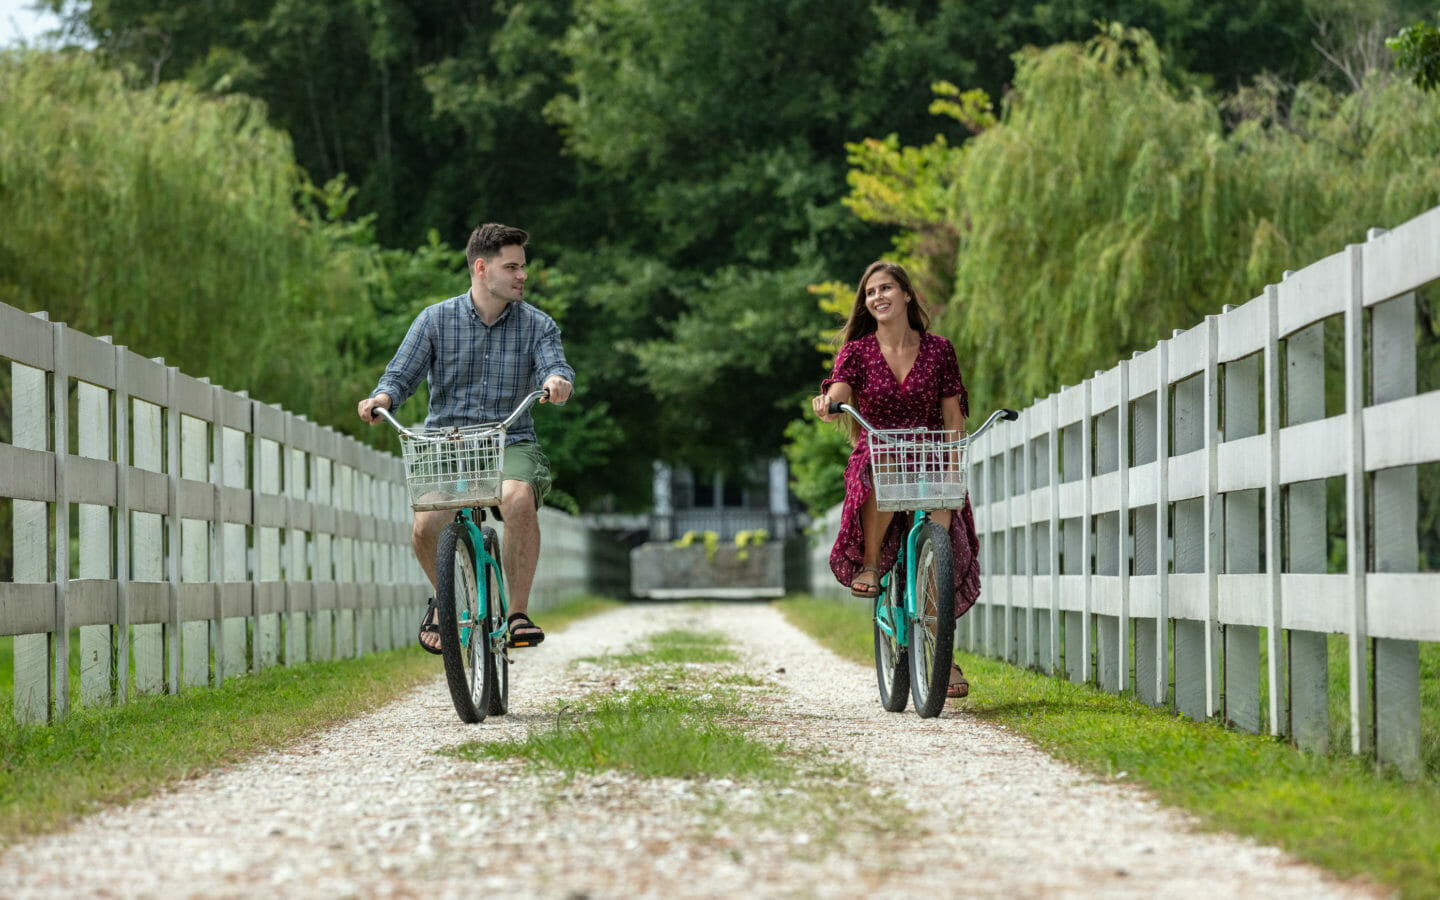 man and woman riding bicycle outdoor during daytime